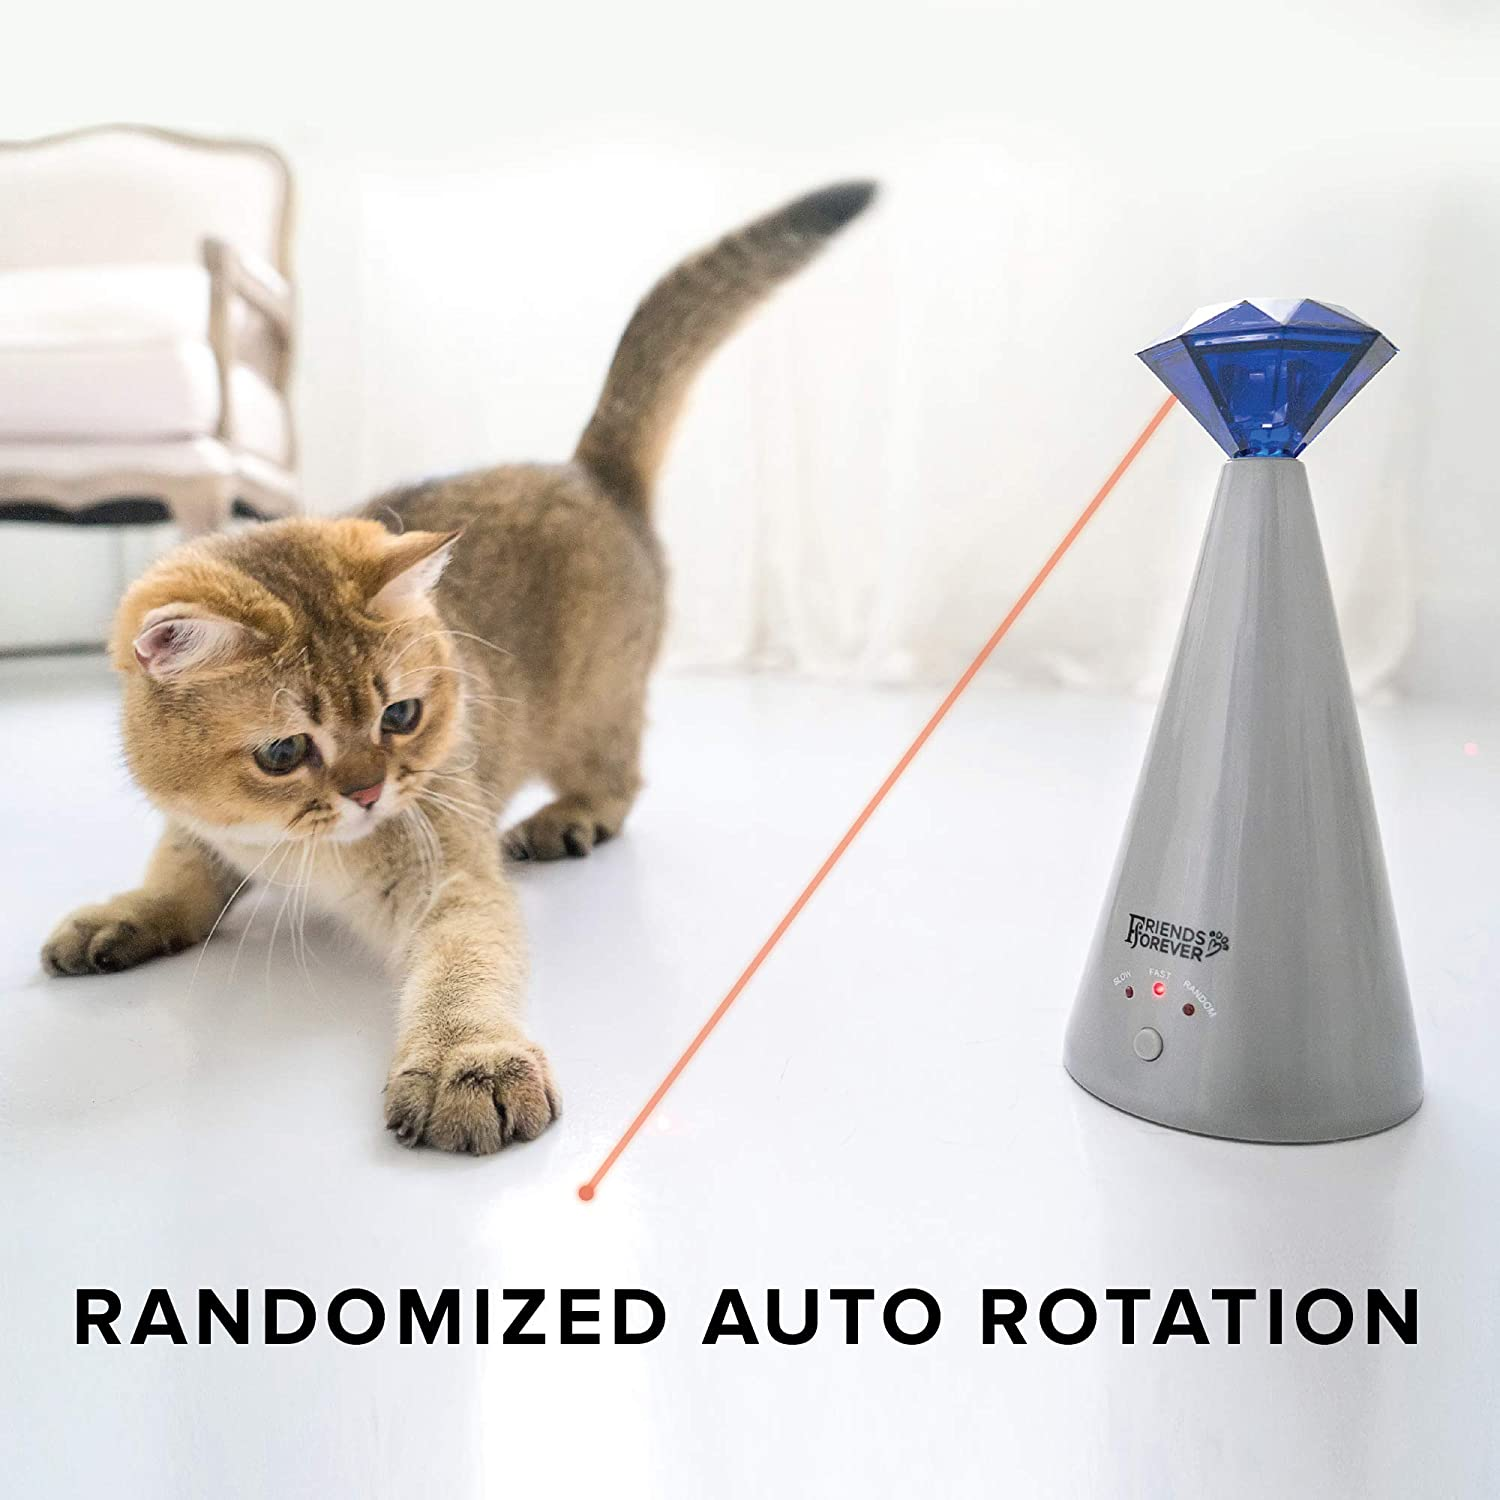 Friends Forever Interactive Cat Laser Toy - Pet Laser Pointer for Cats Automatic Rotating Catch Training, Adjustable 3 Speed Mode